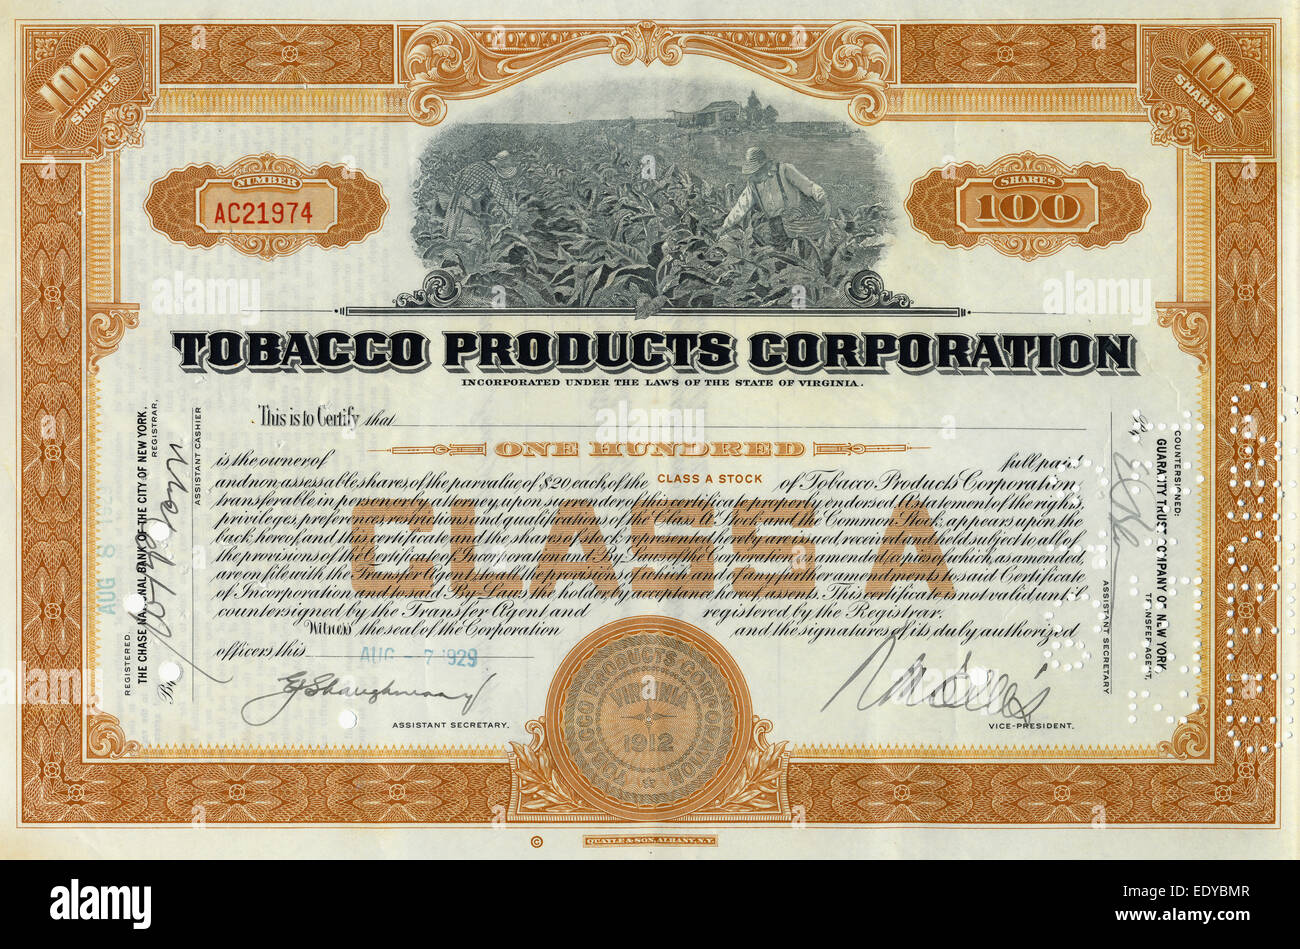 Steel engraving, motif with tobacco harvest, detail, historical share - Stock Image